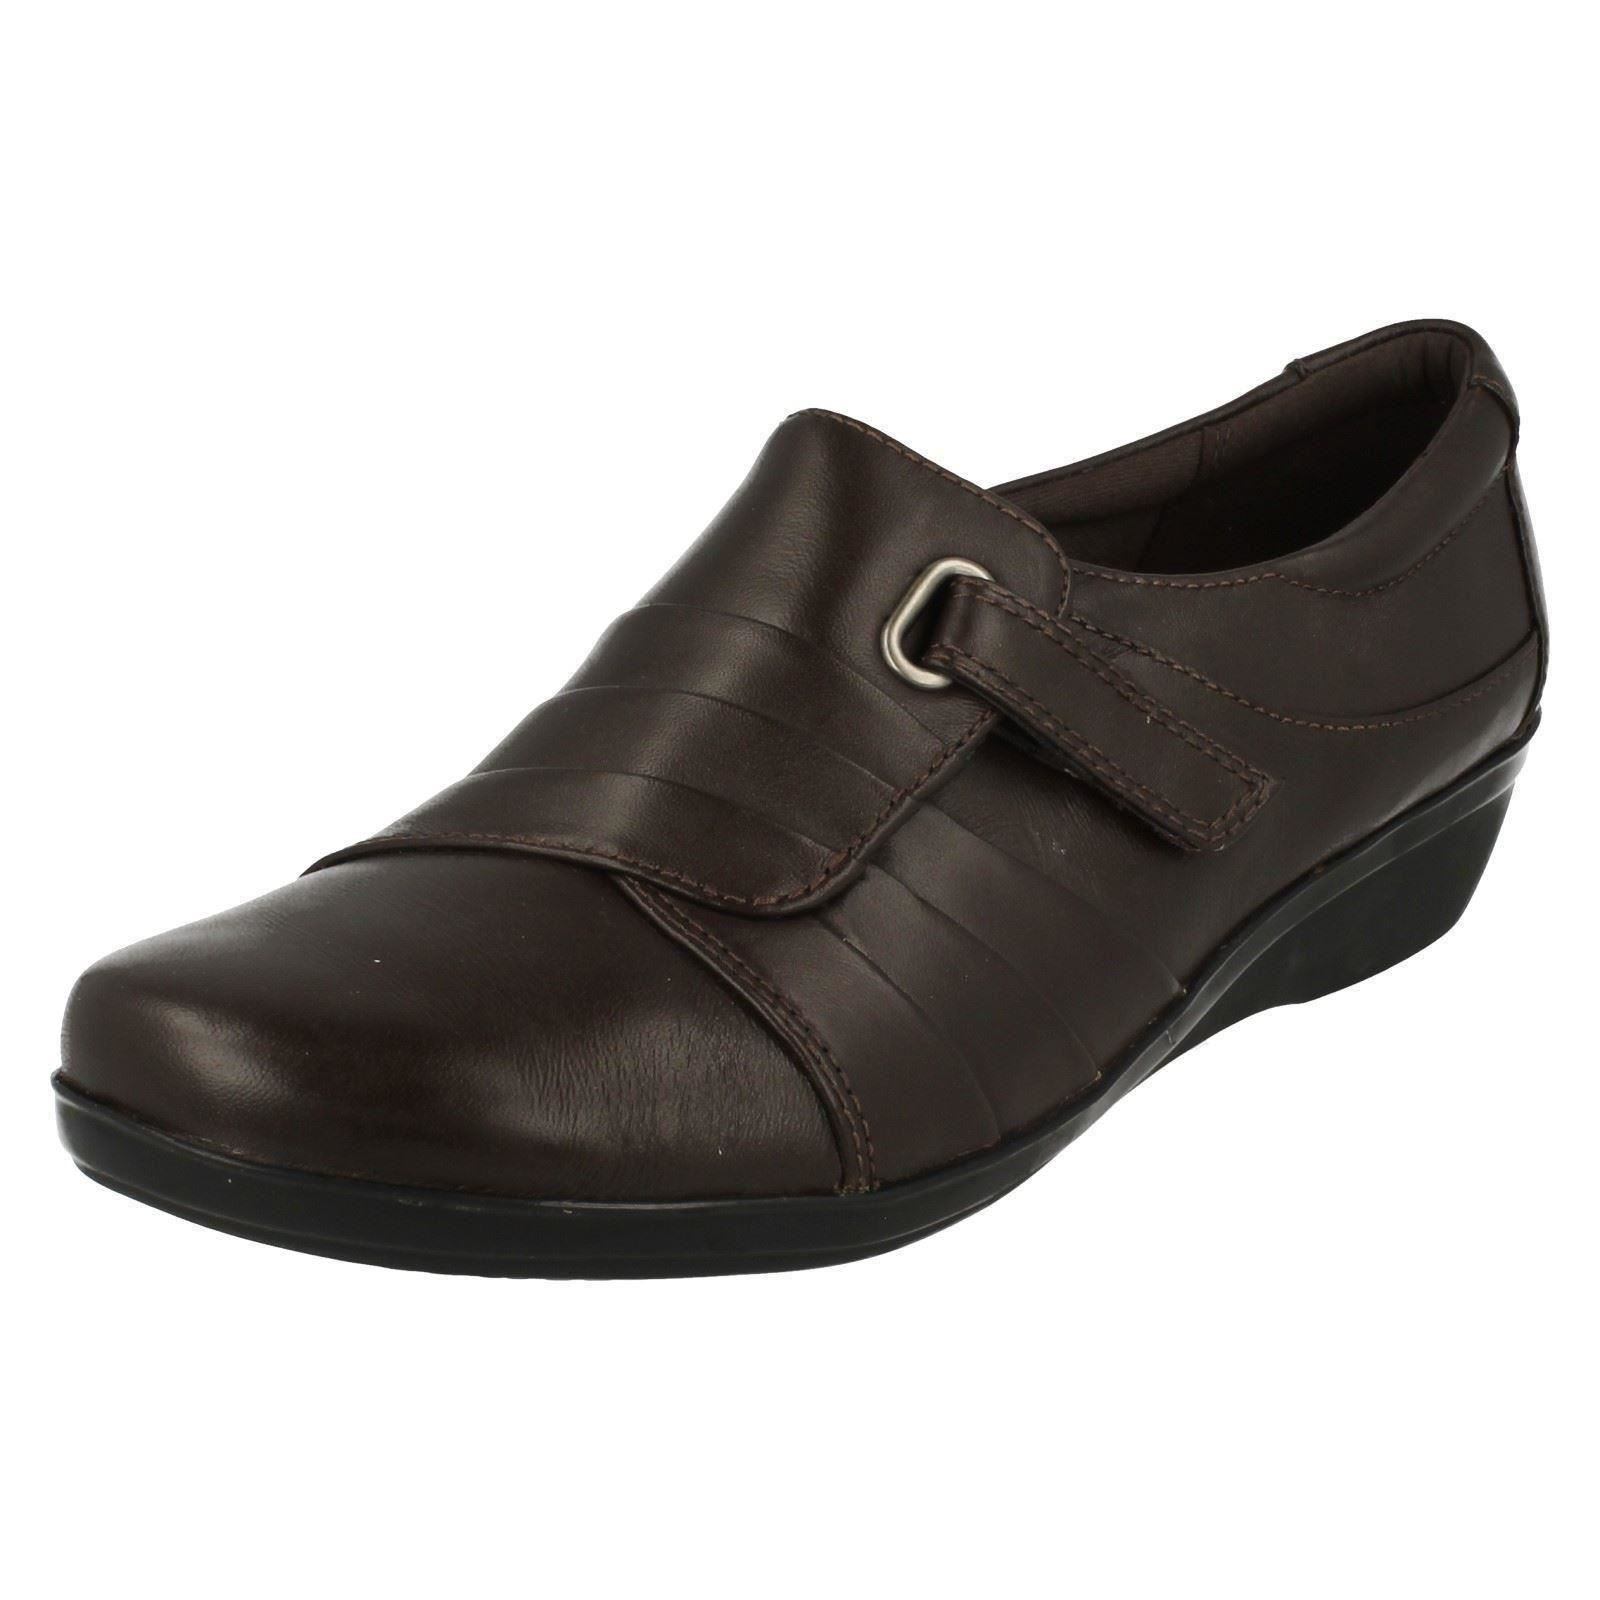 Mujer-Clarks-everlay-Luna-Zapatos-Formales